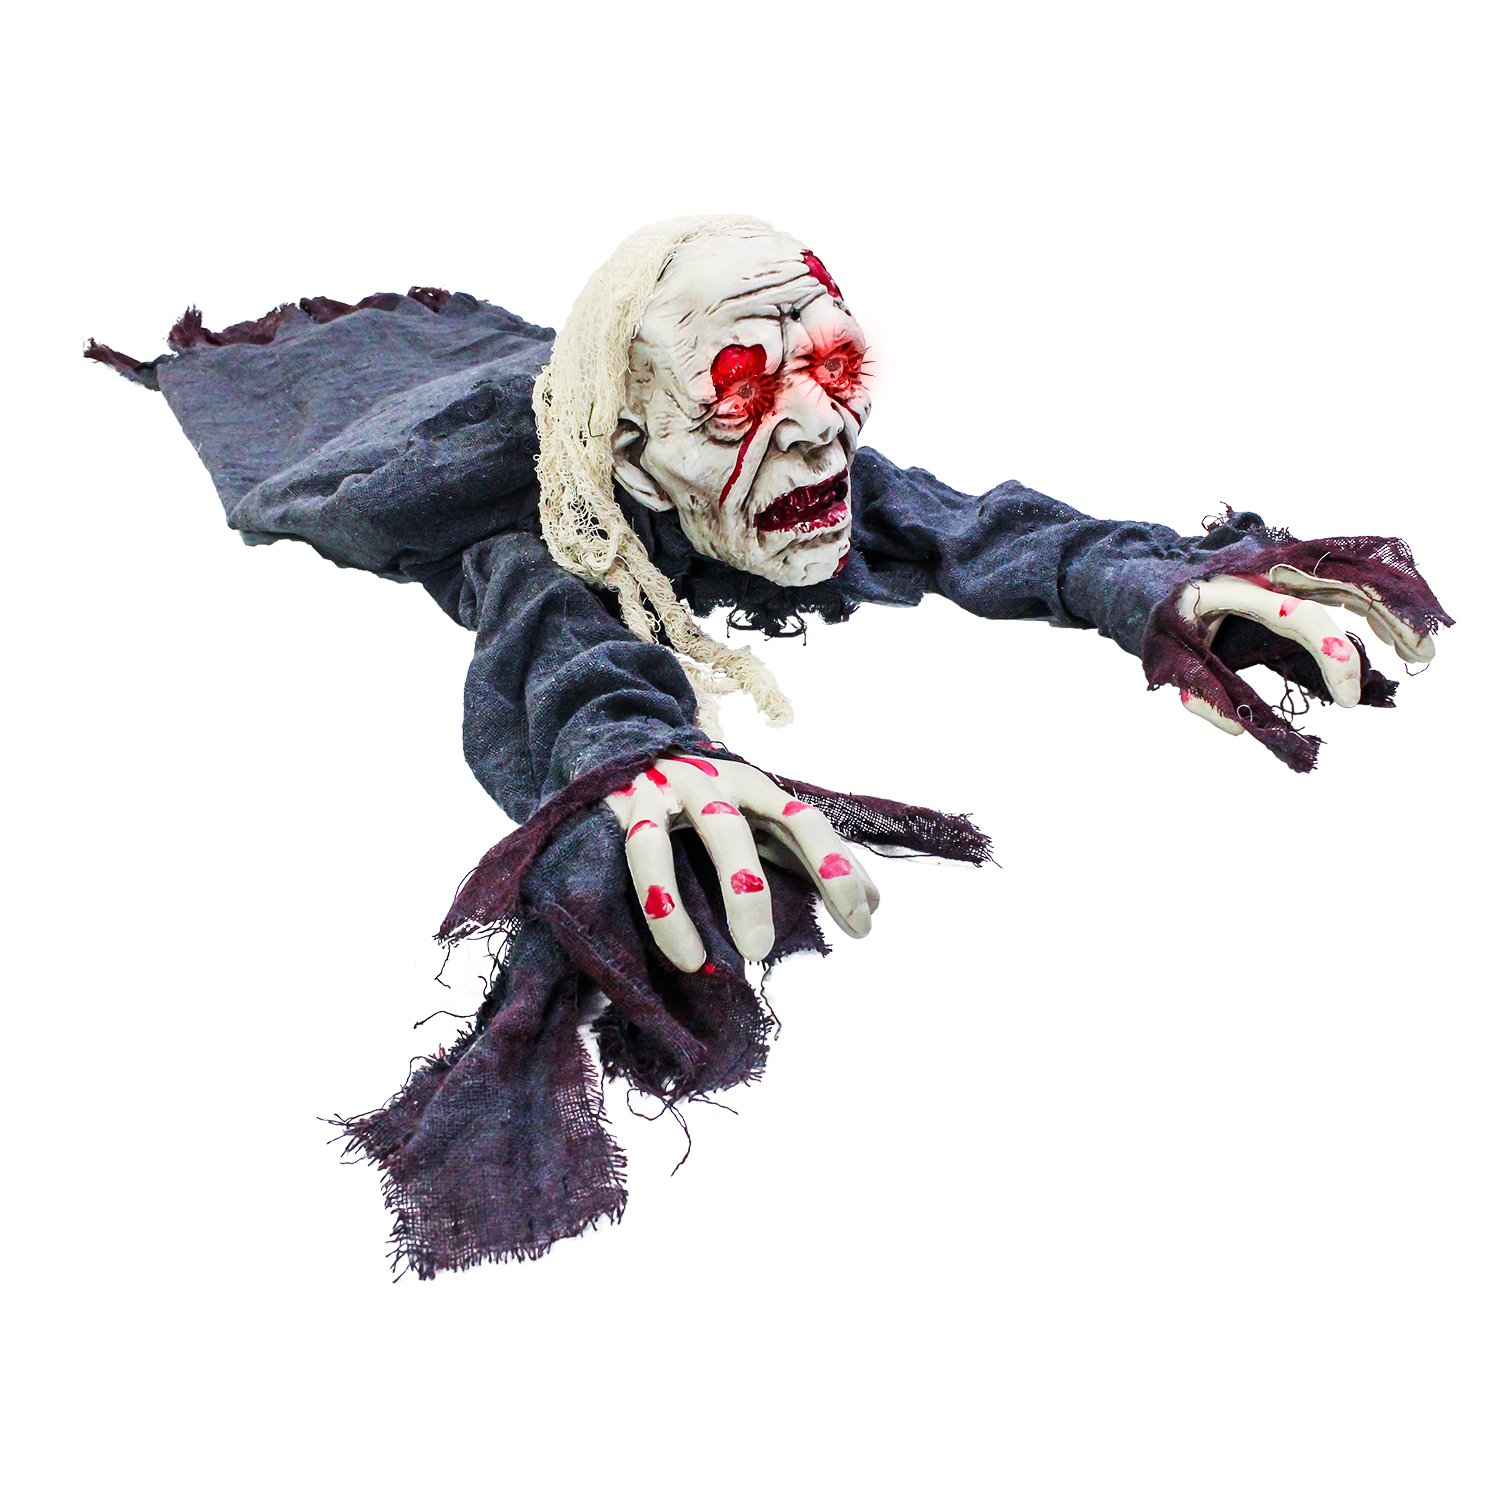 Halloween Haunters Animated Crawling Half Torso Zombie Groundbreaker Graveyard Prop Decoration Light Up Eyes (Battery Operated)